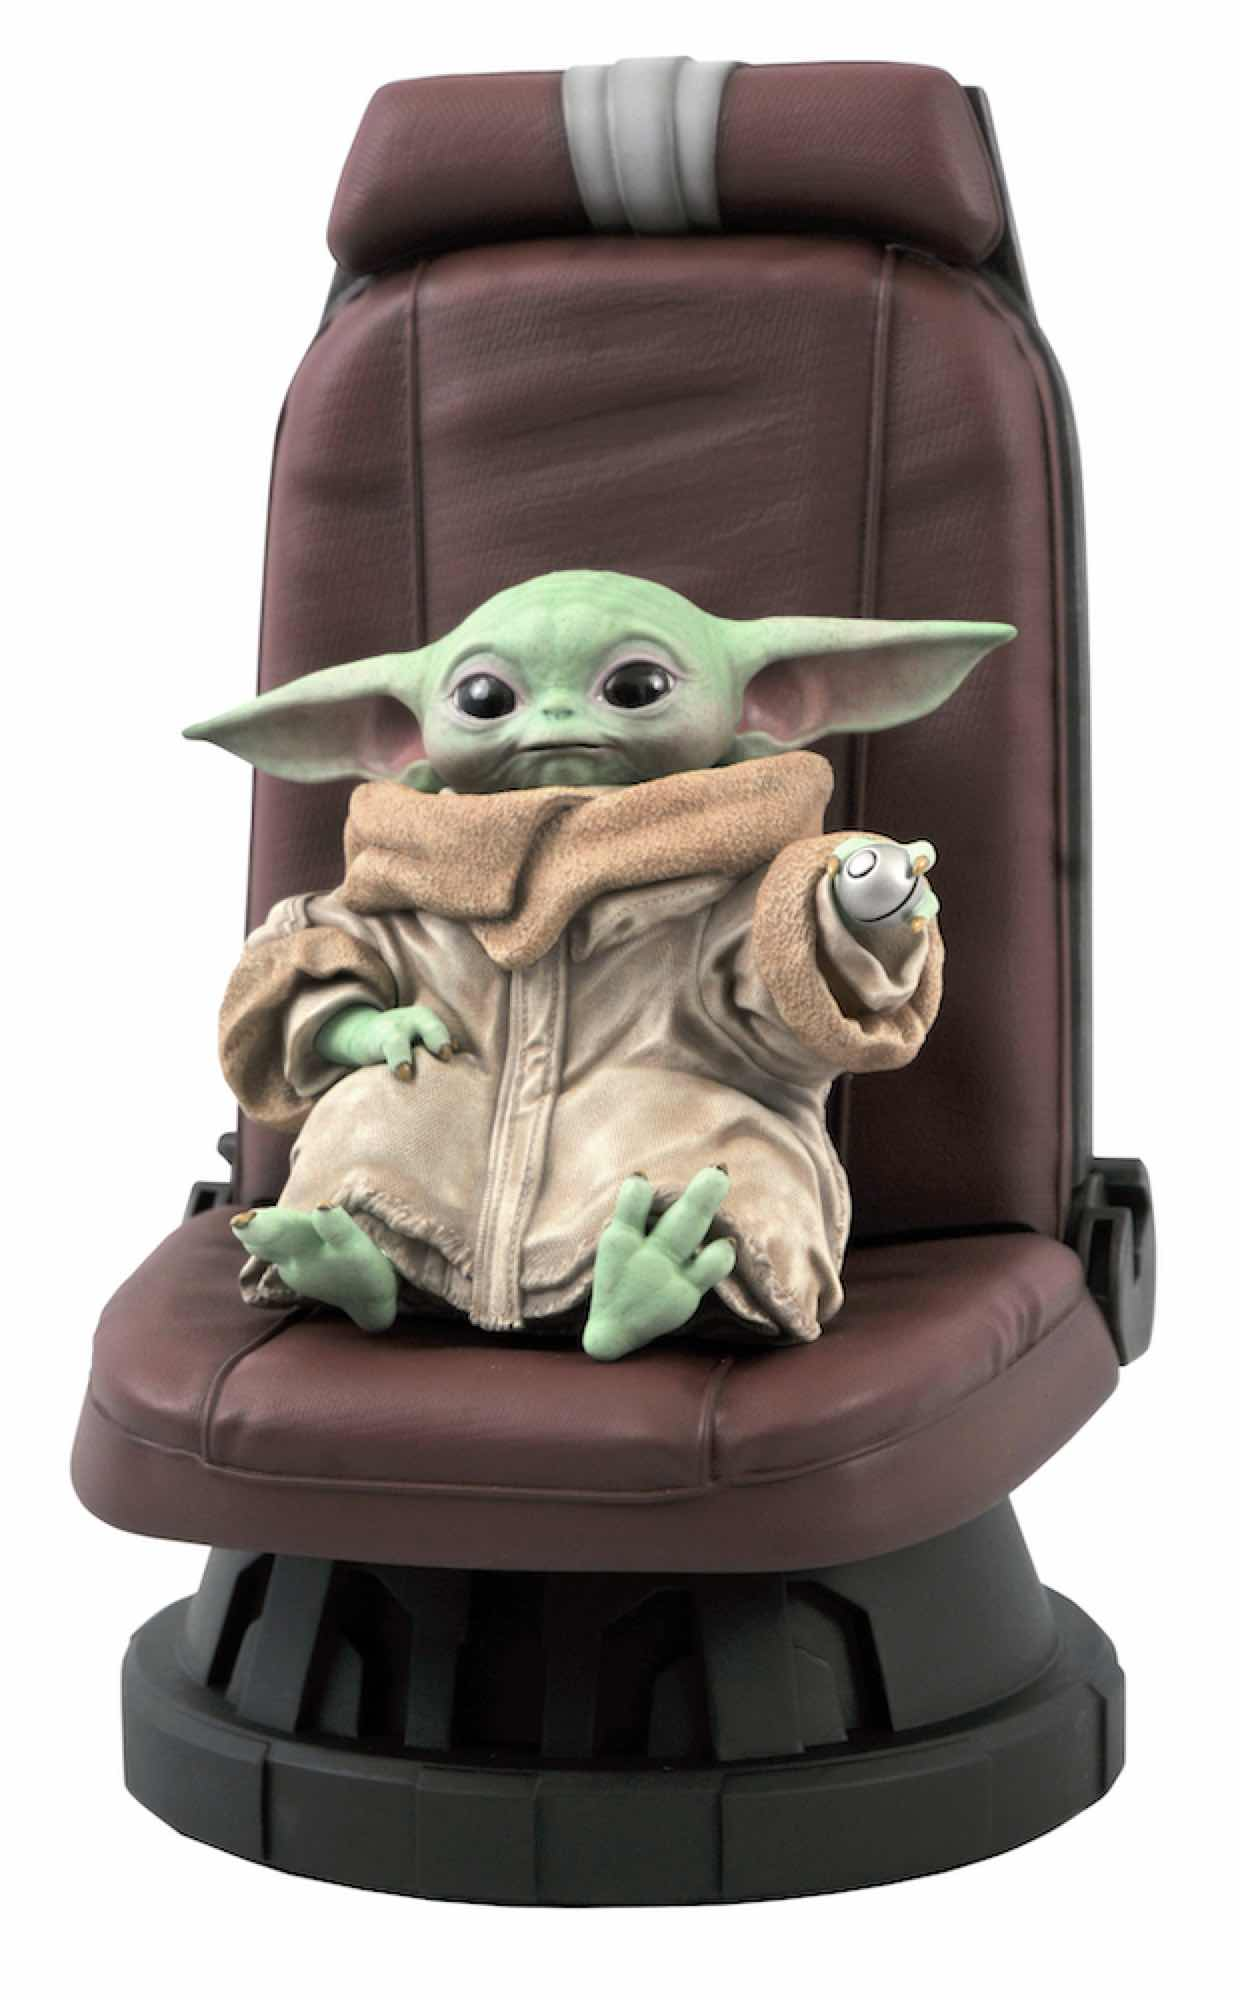 THE CHILD IN CHAIR BUSTO RESINA 30 CM 1/2 SCALE STATUE STAR WARS: THE MANDALORIAN